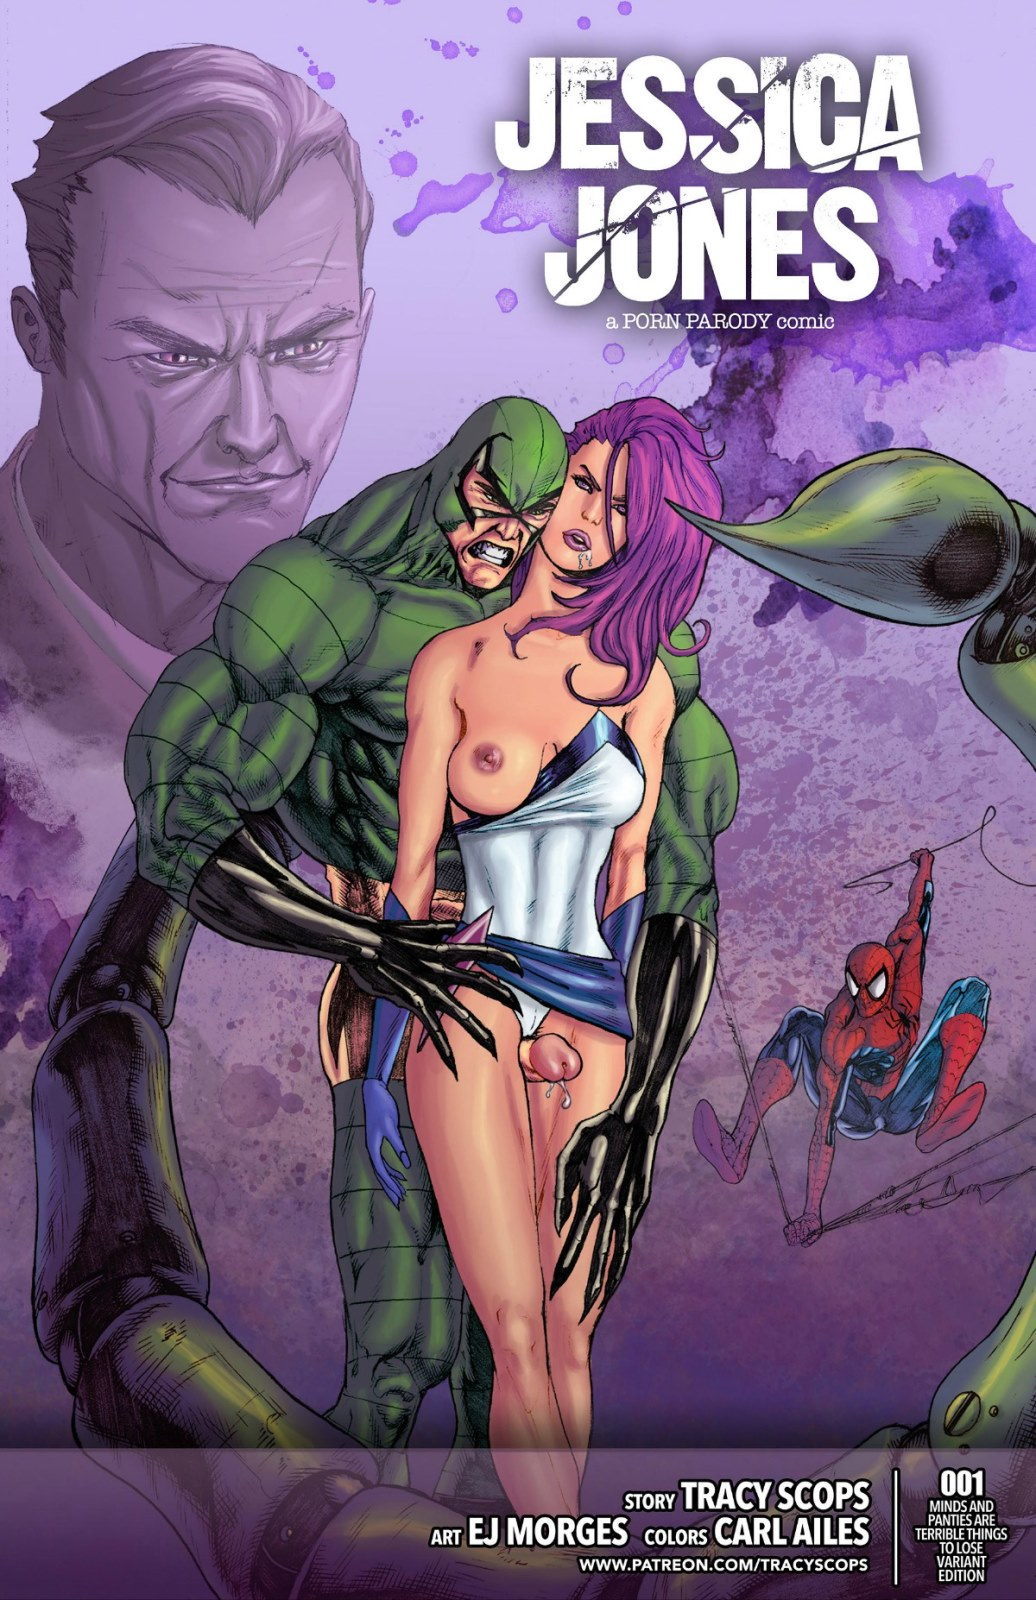 Jessica Jones-Tracy Scops (Spiderman) porn comics 8 muses